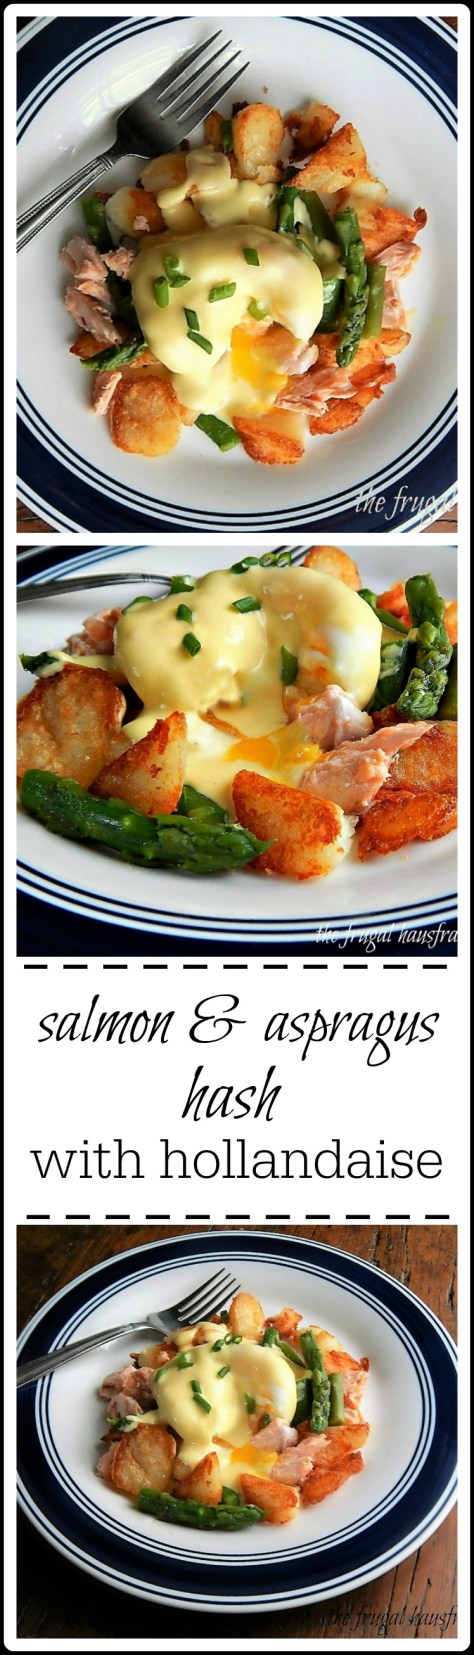 Salmon & Asparagus Hash - riffed off Tyler Florence, this is a beautiful brunch dish!